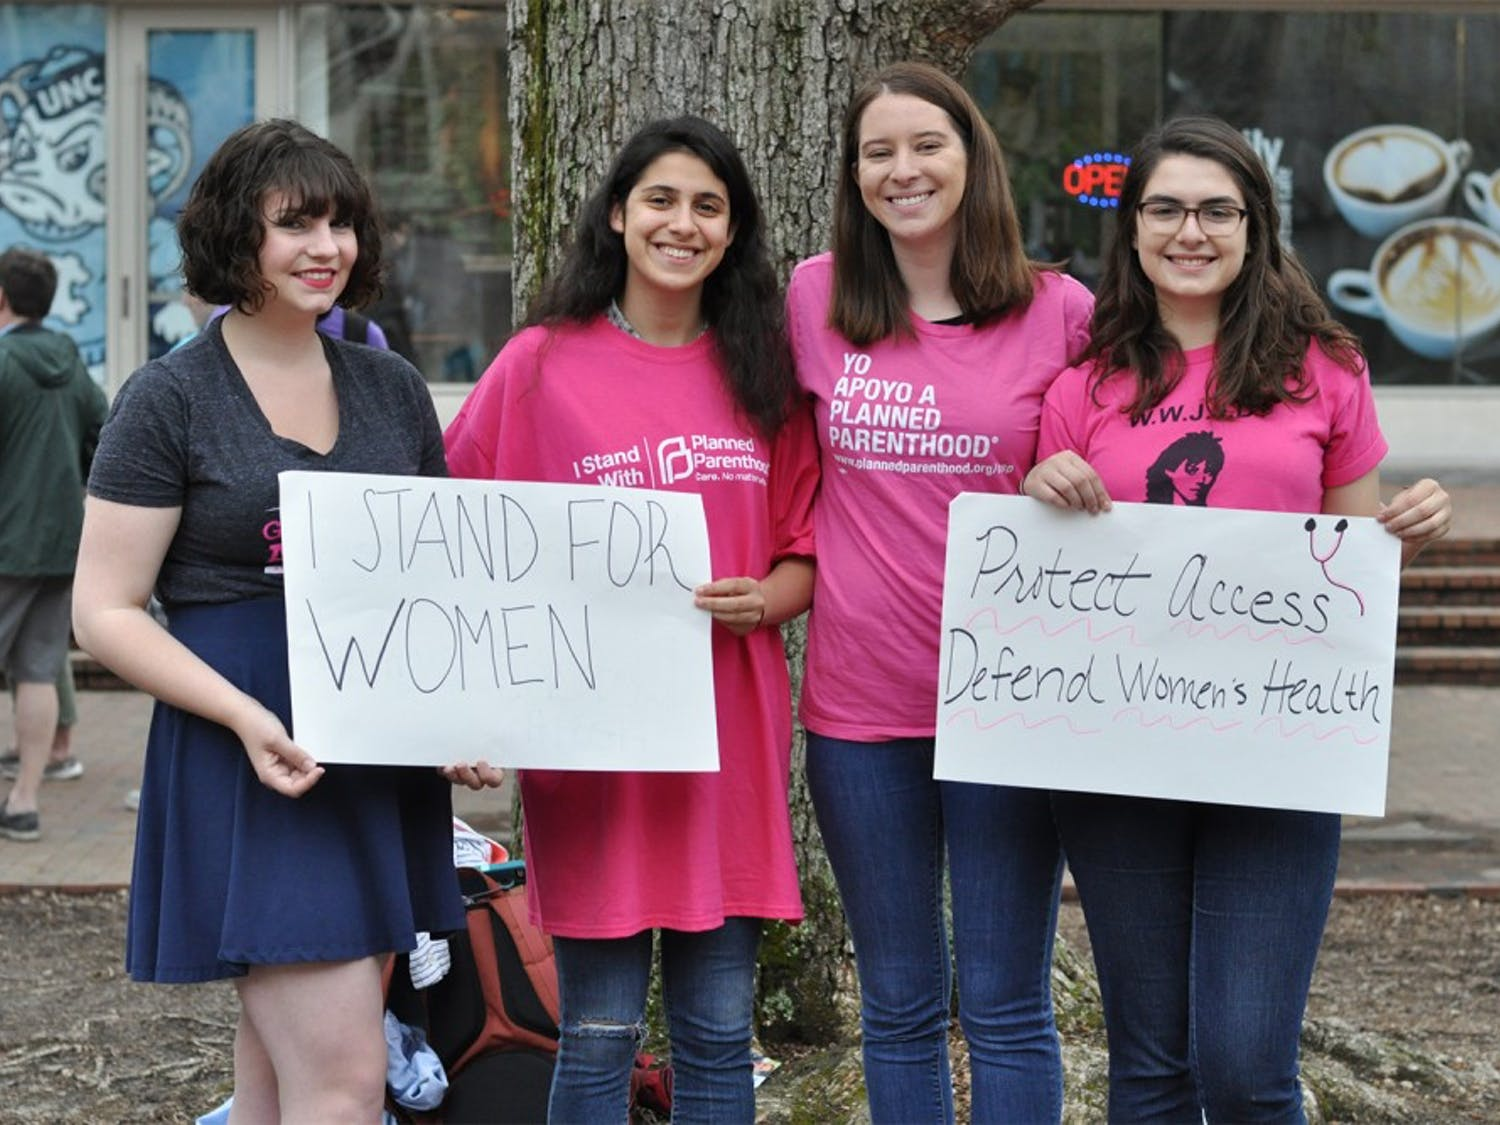 From left to right, Cara Schumann, Ori Hashmonay, Megan Cross, and Emily Goldstein gathered in the pit to rally for abortion rights on Thursday.